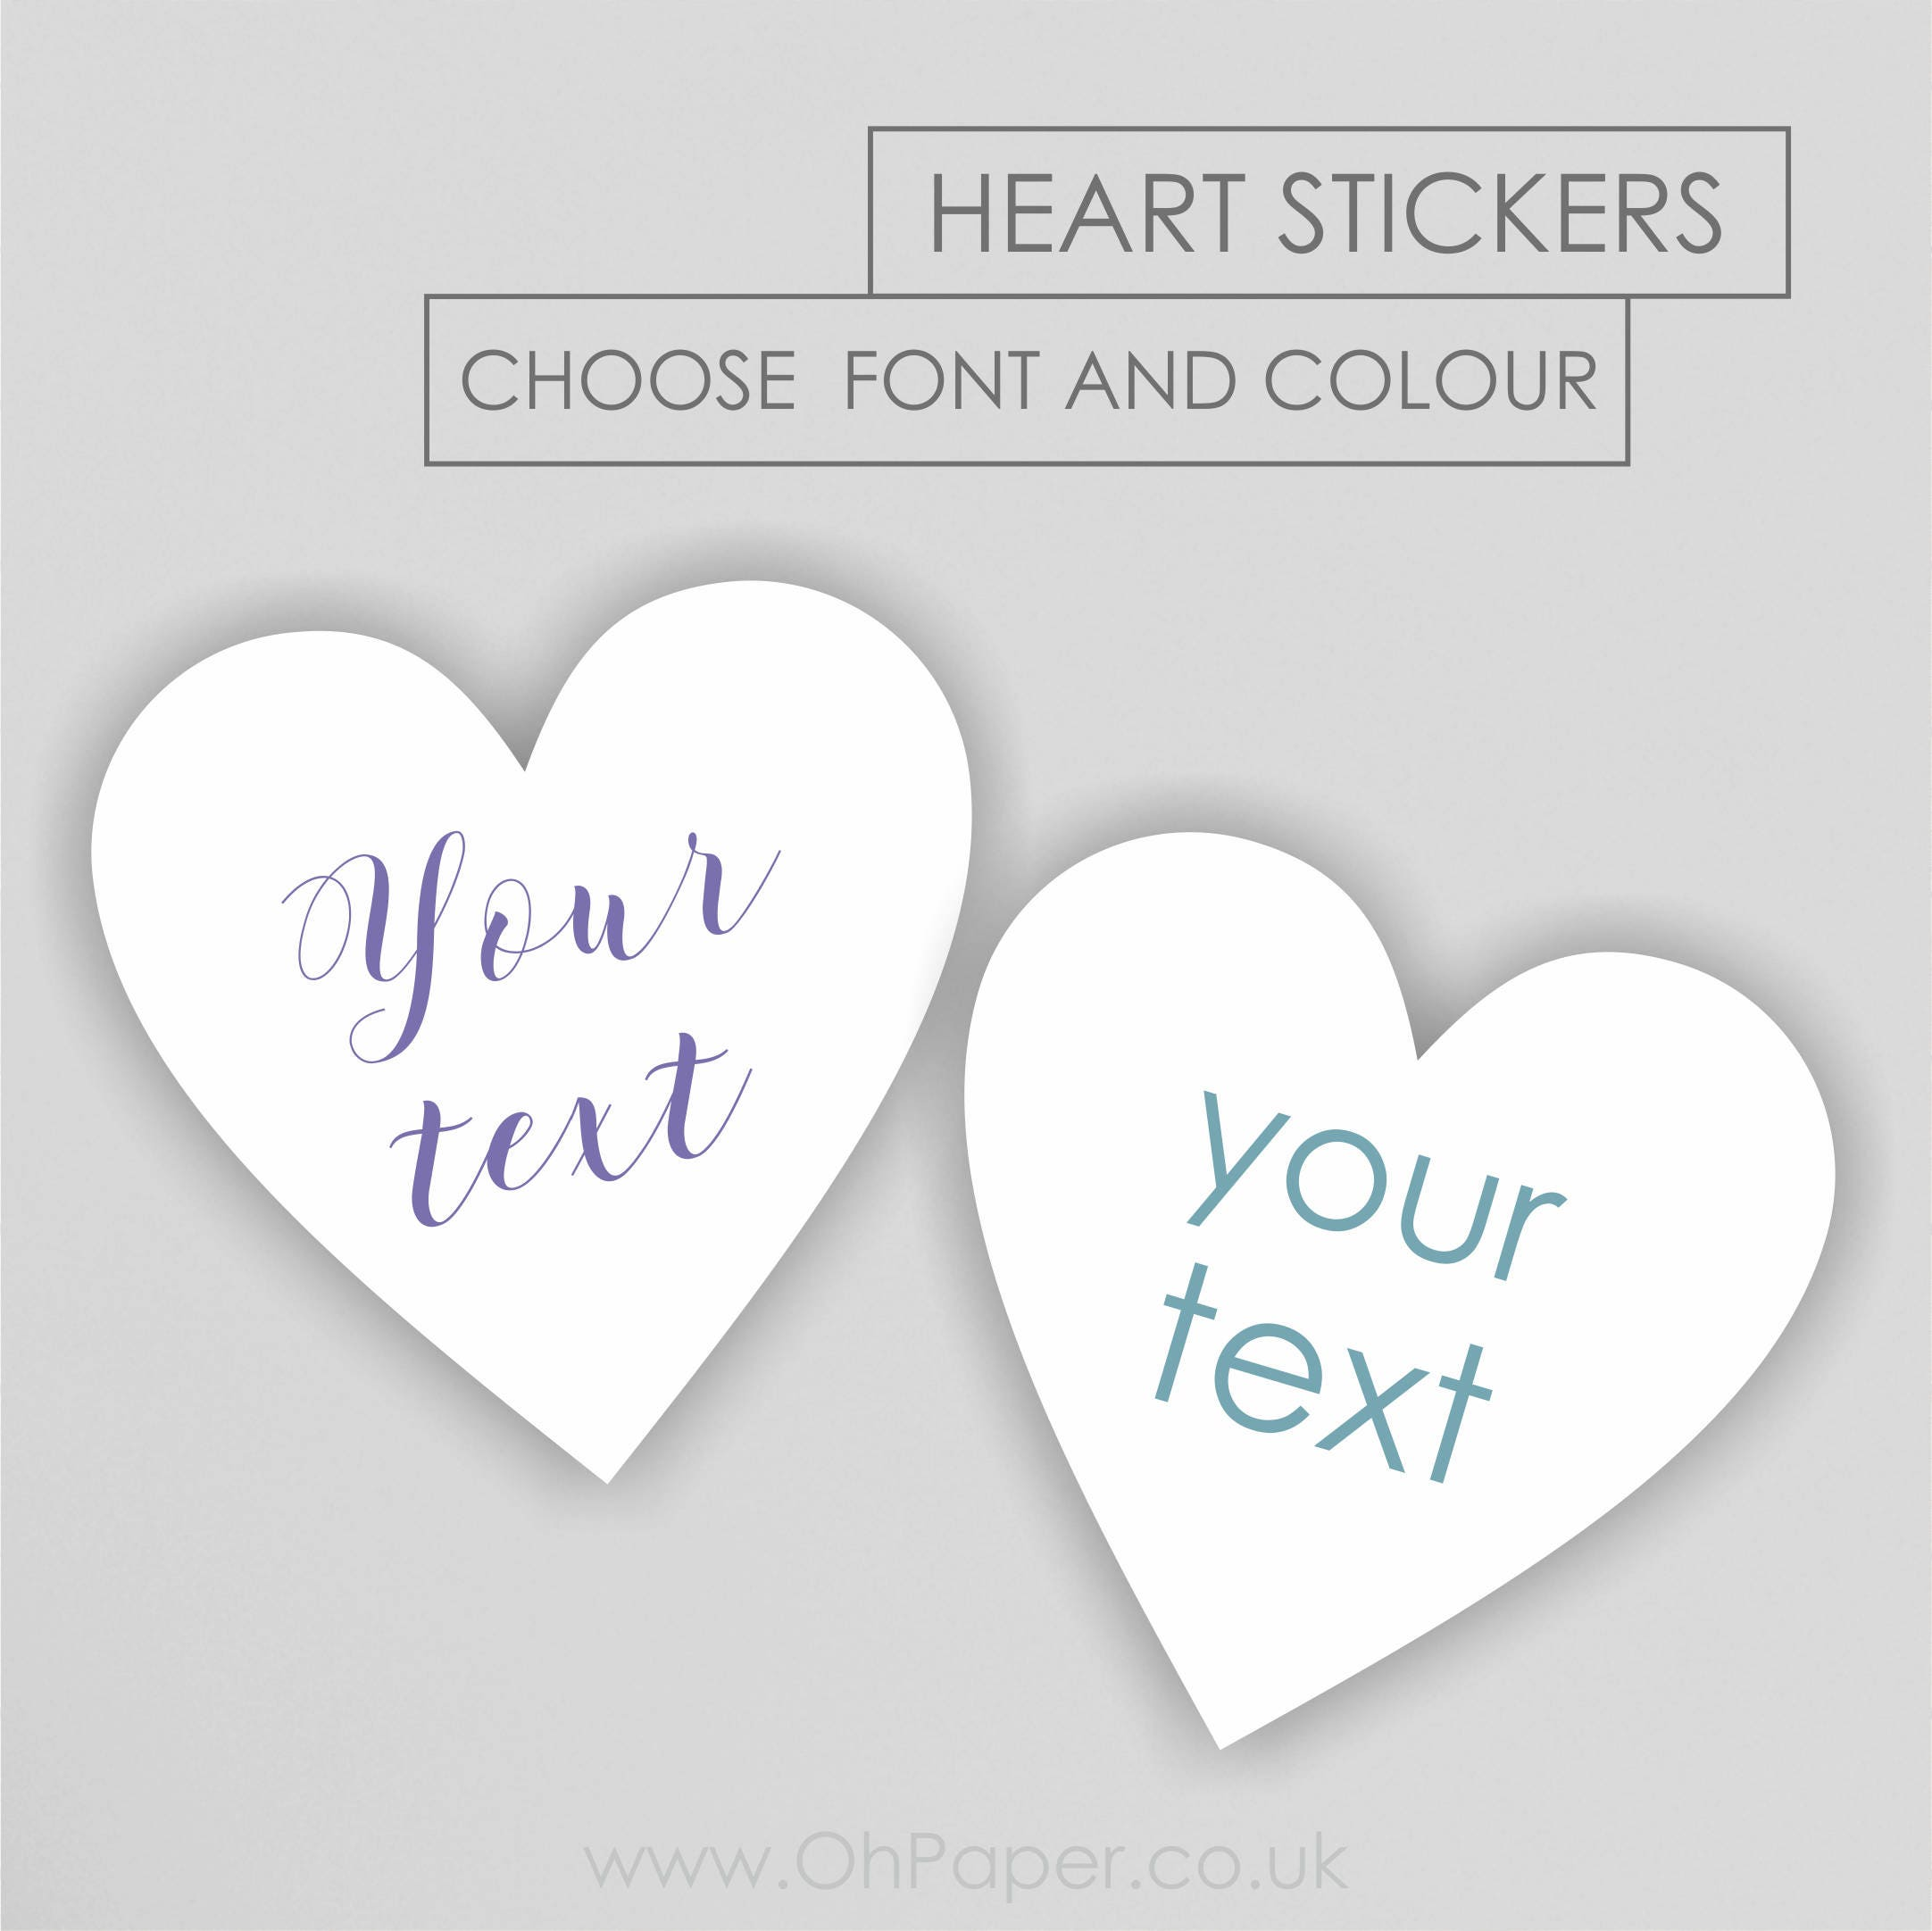 Heart stickers your text stickers custom personalised stickers heart shaped stickers wedding stickers party favours birthday